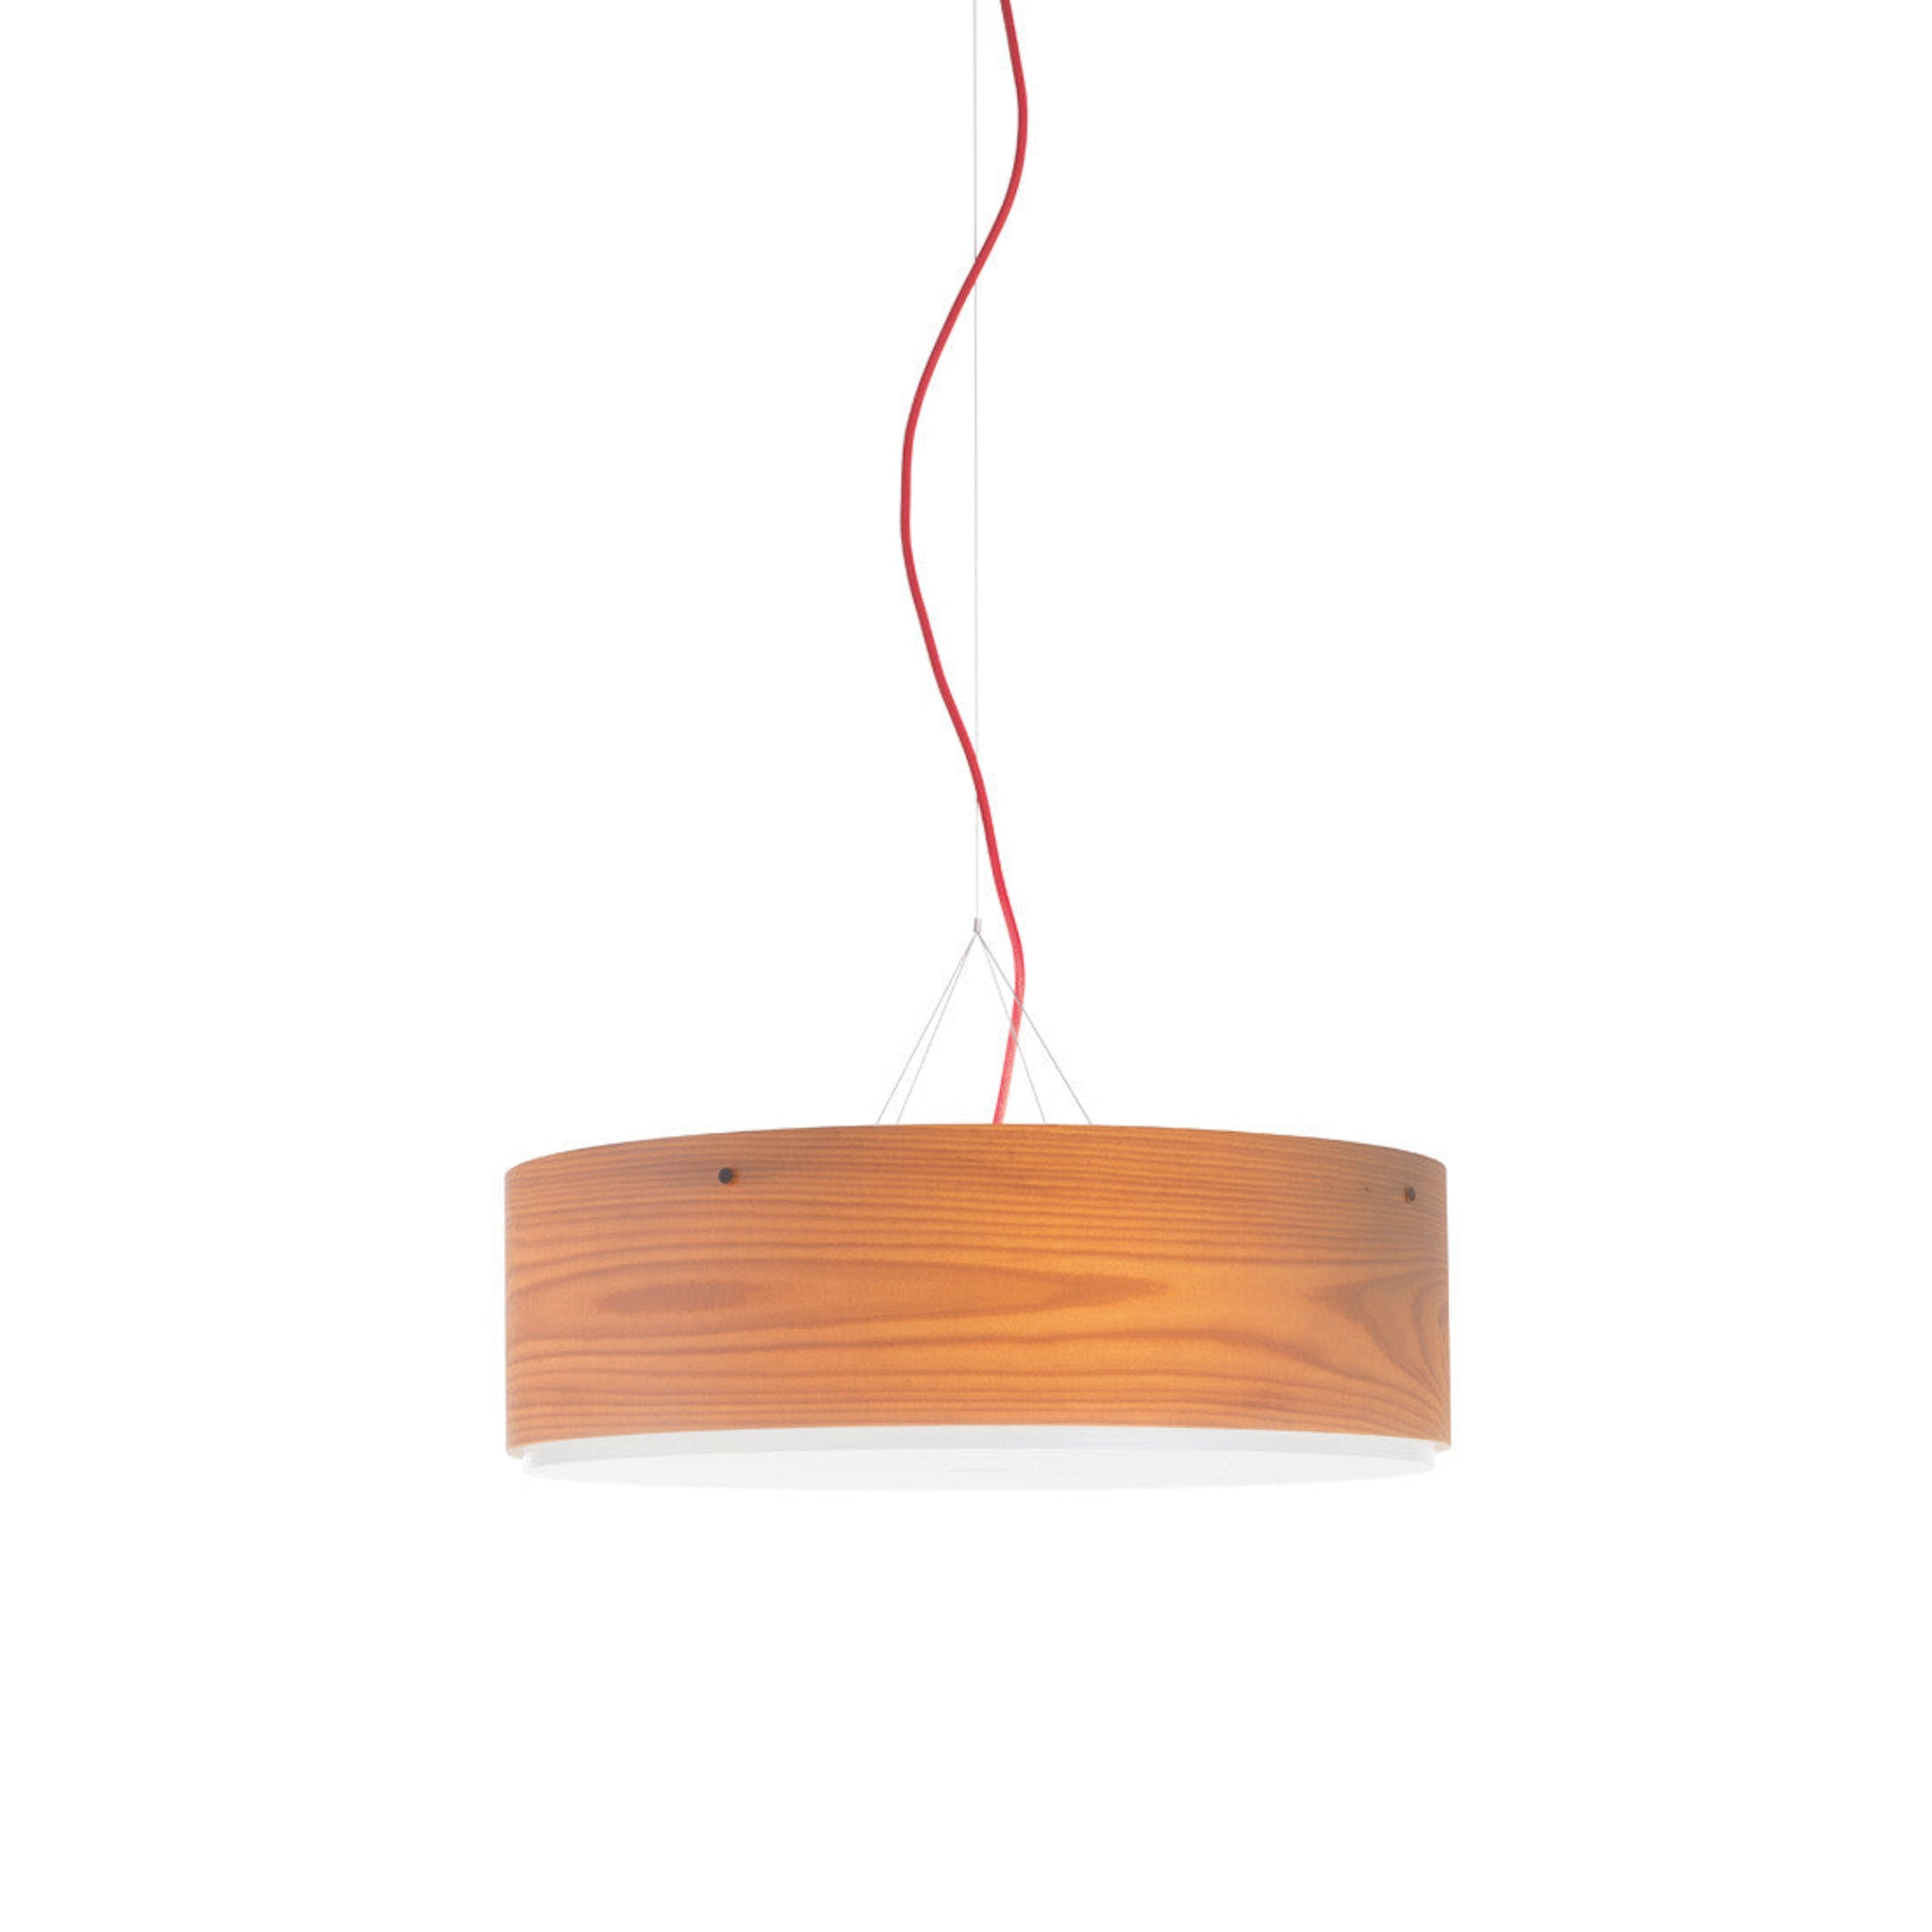 Arba Pendant Light by Matteo Thurn